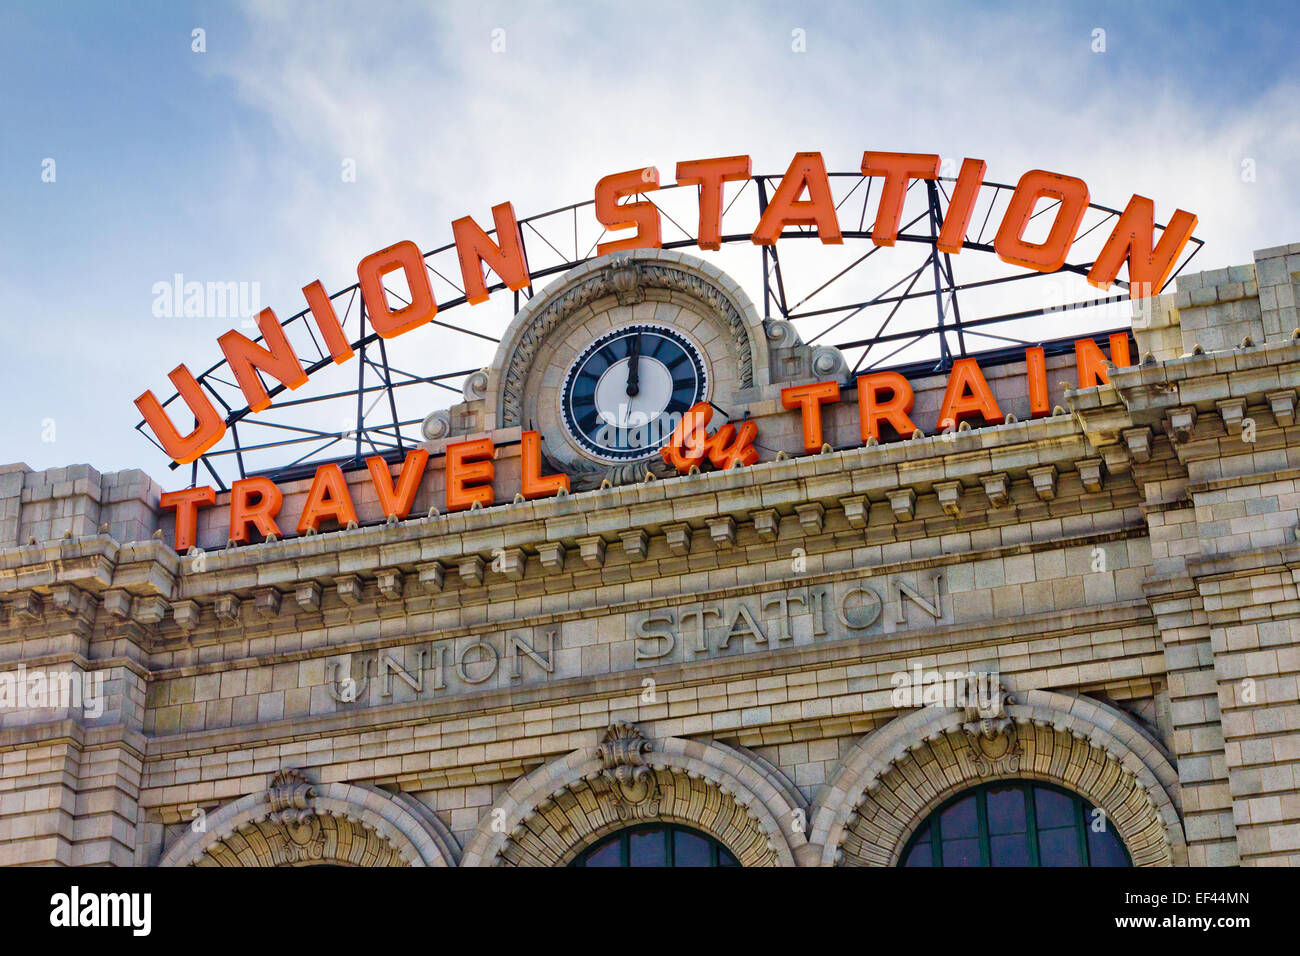 Union Station in downtown Denver, Colorado Stock Photo